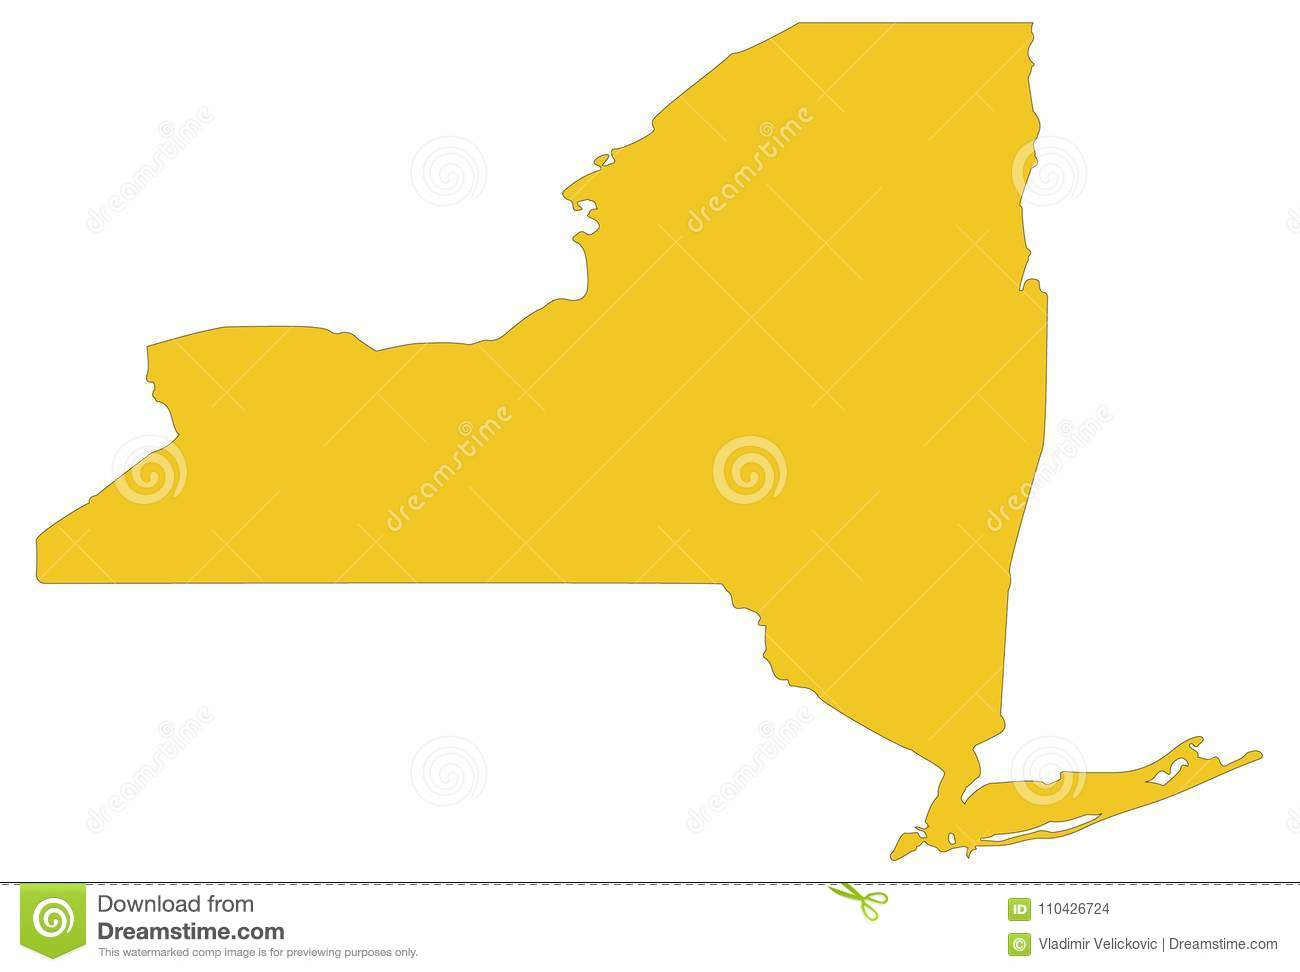 New York State Map - State In The Northeastern United States Stock ...